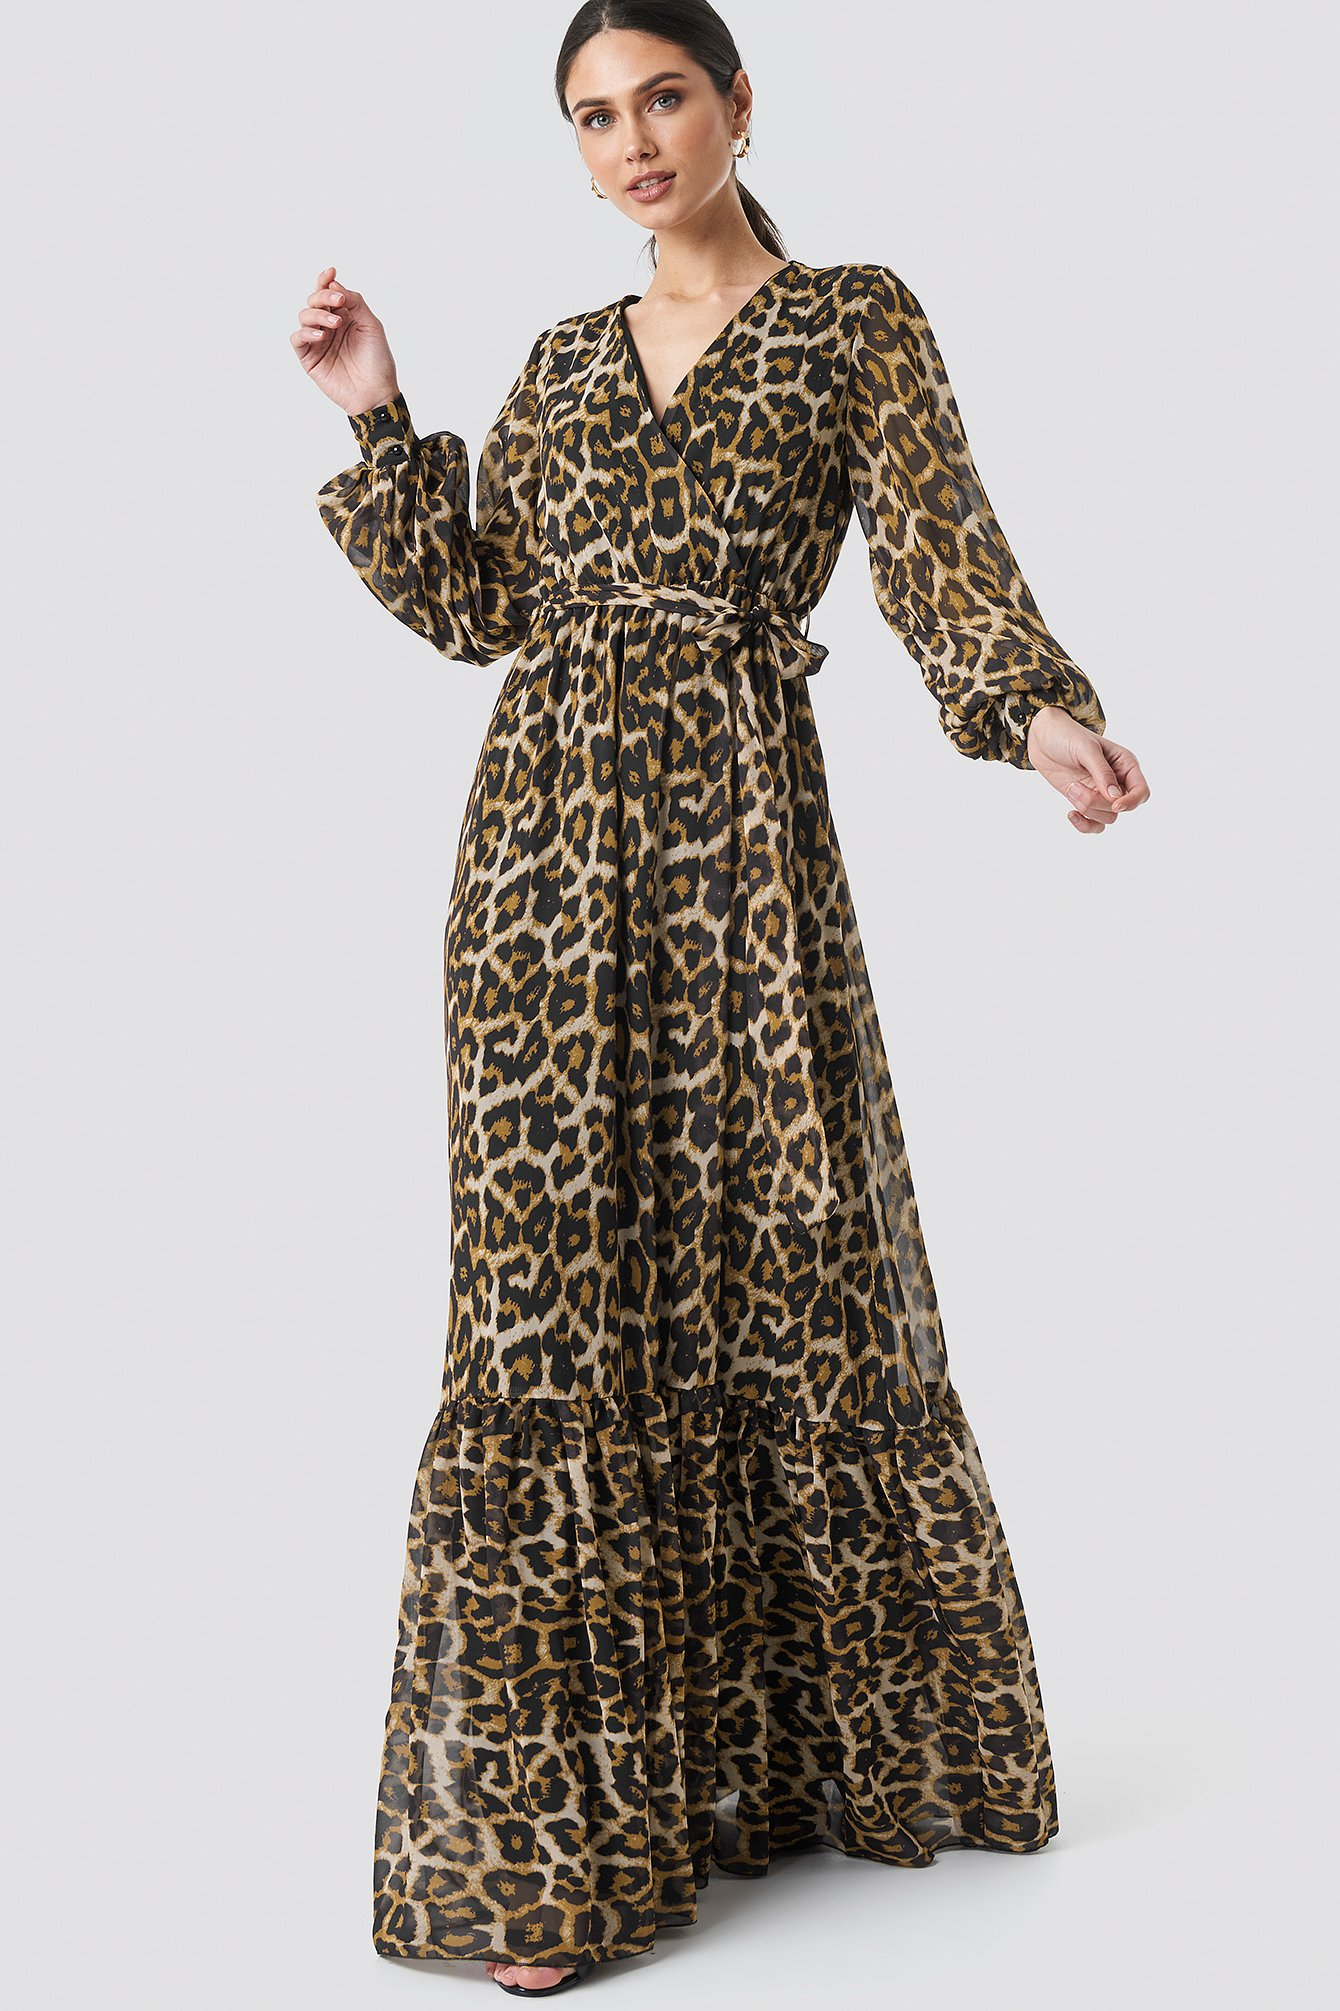 Leopard Patterned Evening Dress NA-KD.COM